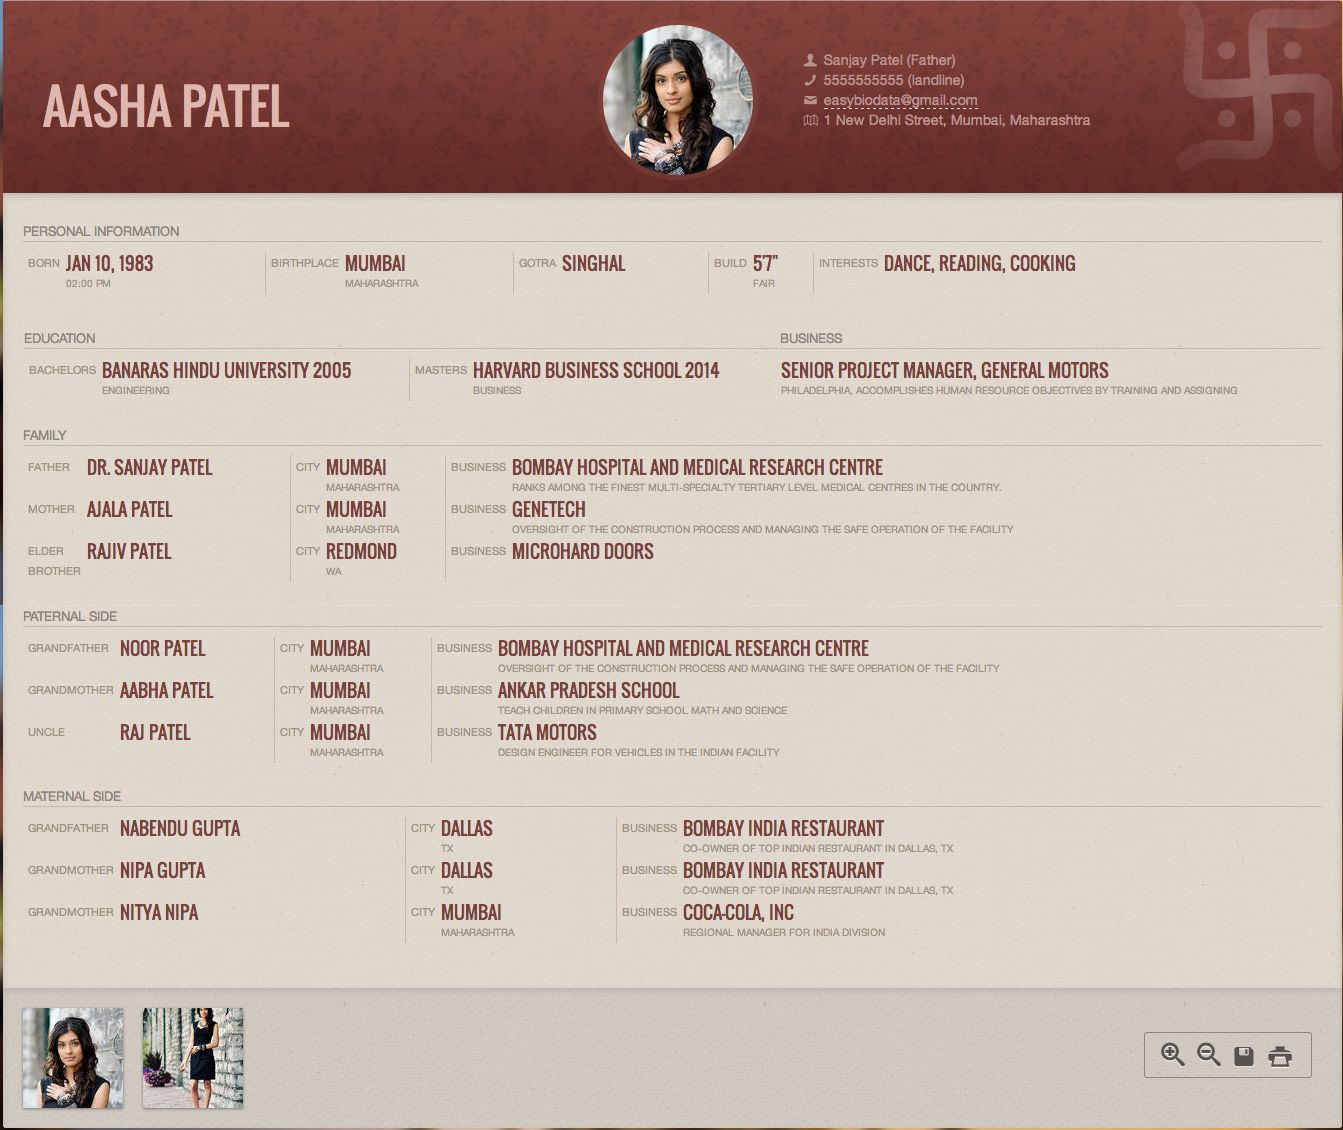 marriage biodata format created easybiodata com marriage biodata format created easybiodata com